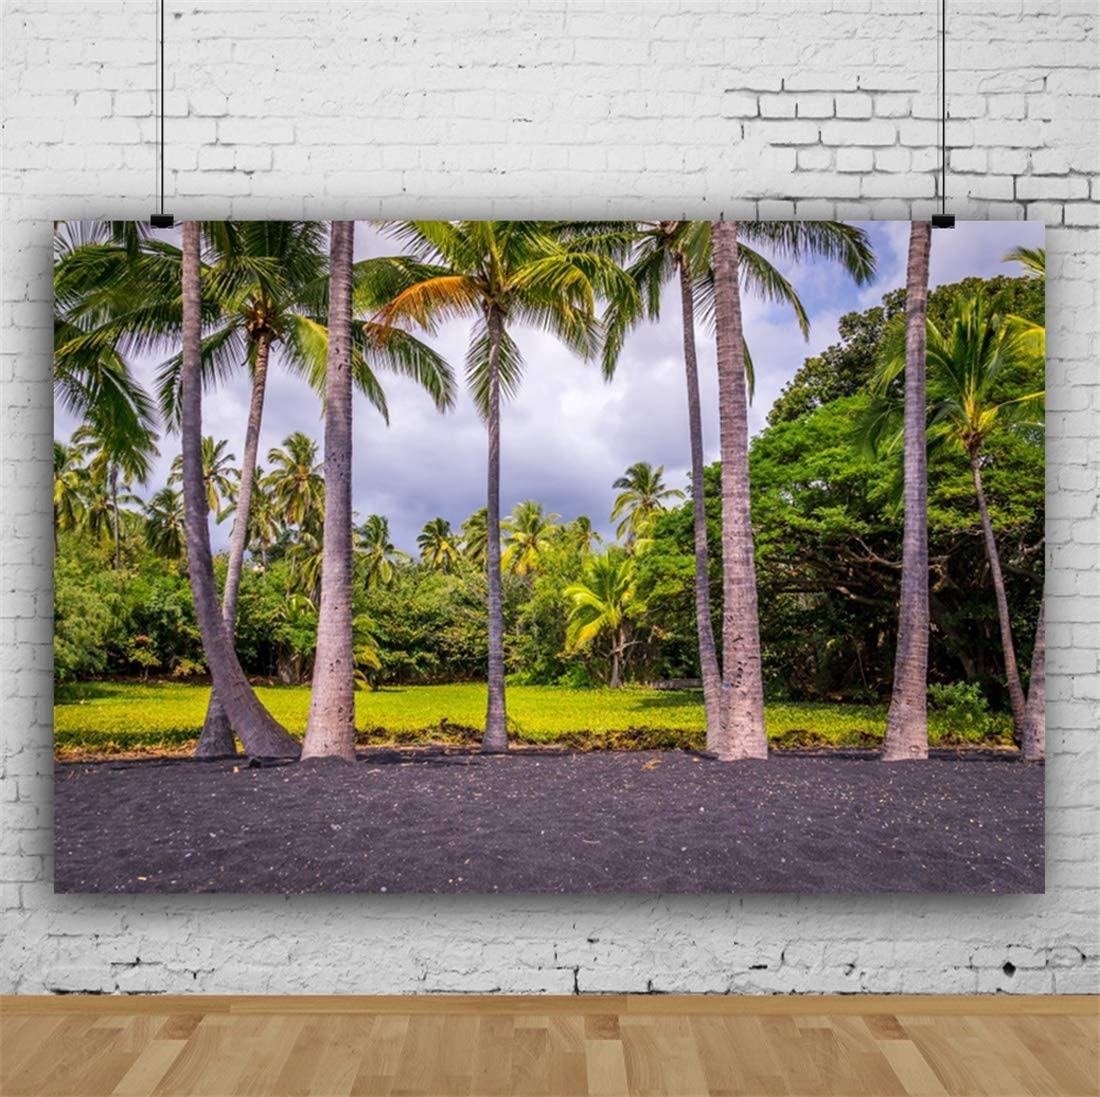 Yeele 10x8ft Spring Landscape Photography Background Grassland Palm Tree Sunset Forest Jungle Blue Sky and White Cloud Summer Party Decoration Photo Backdrop Adults Portrait